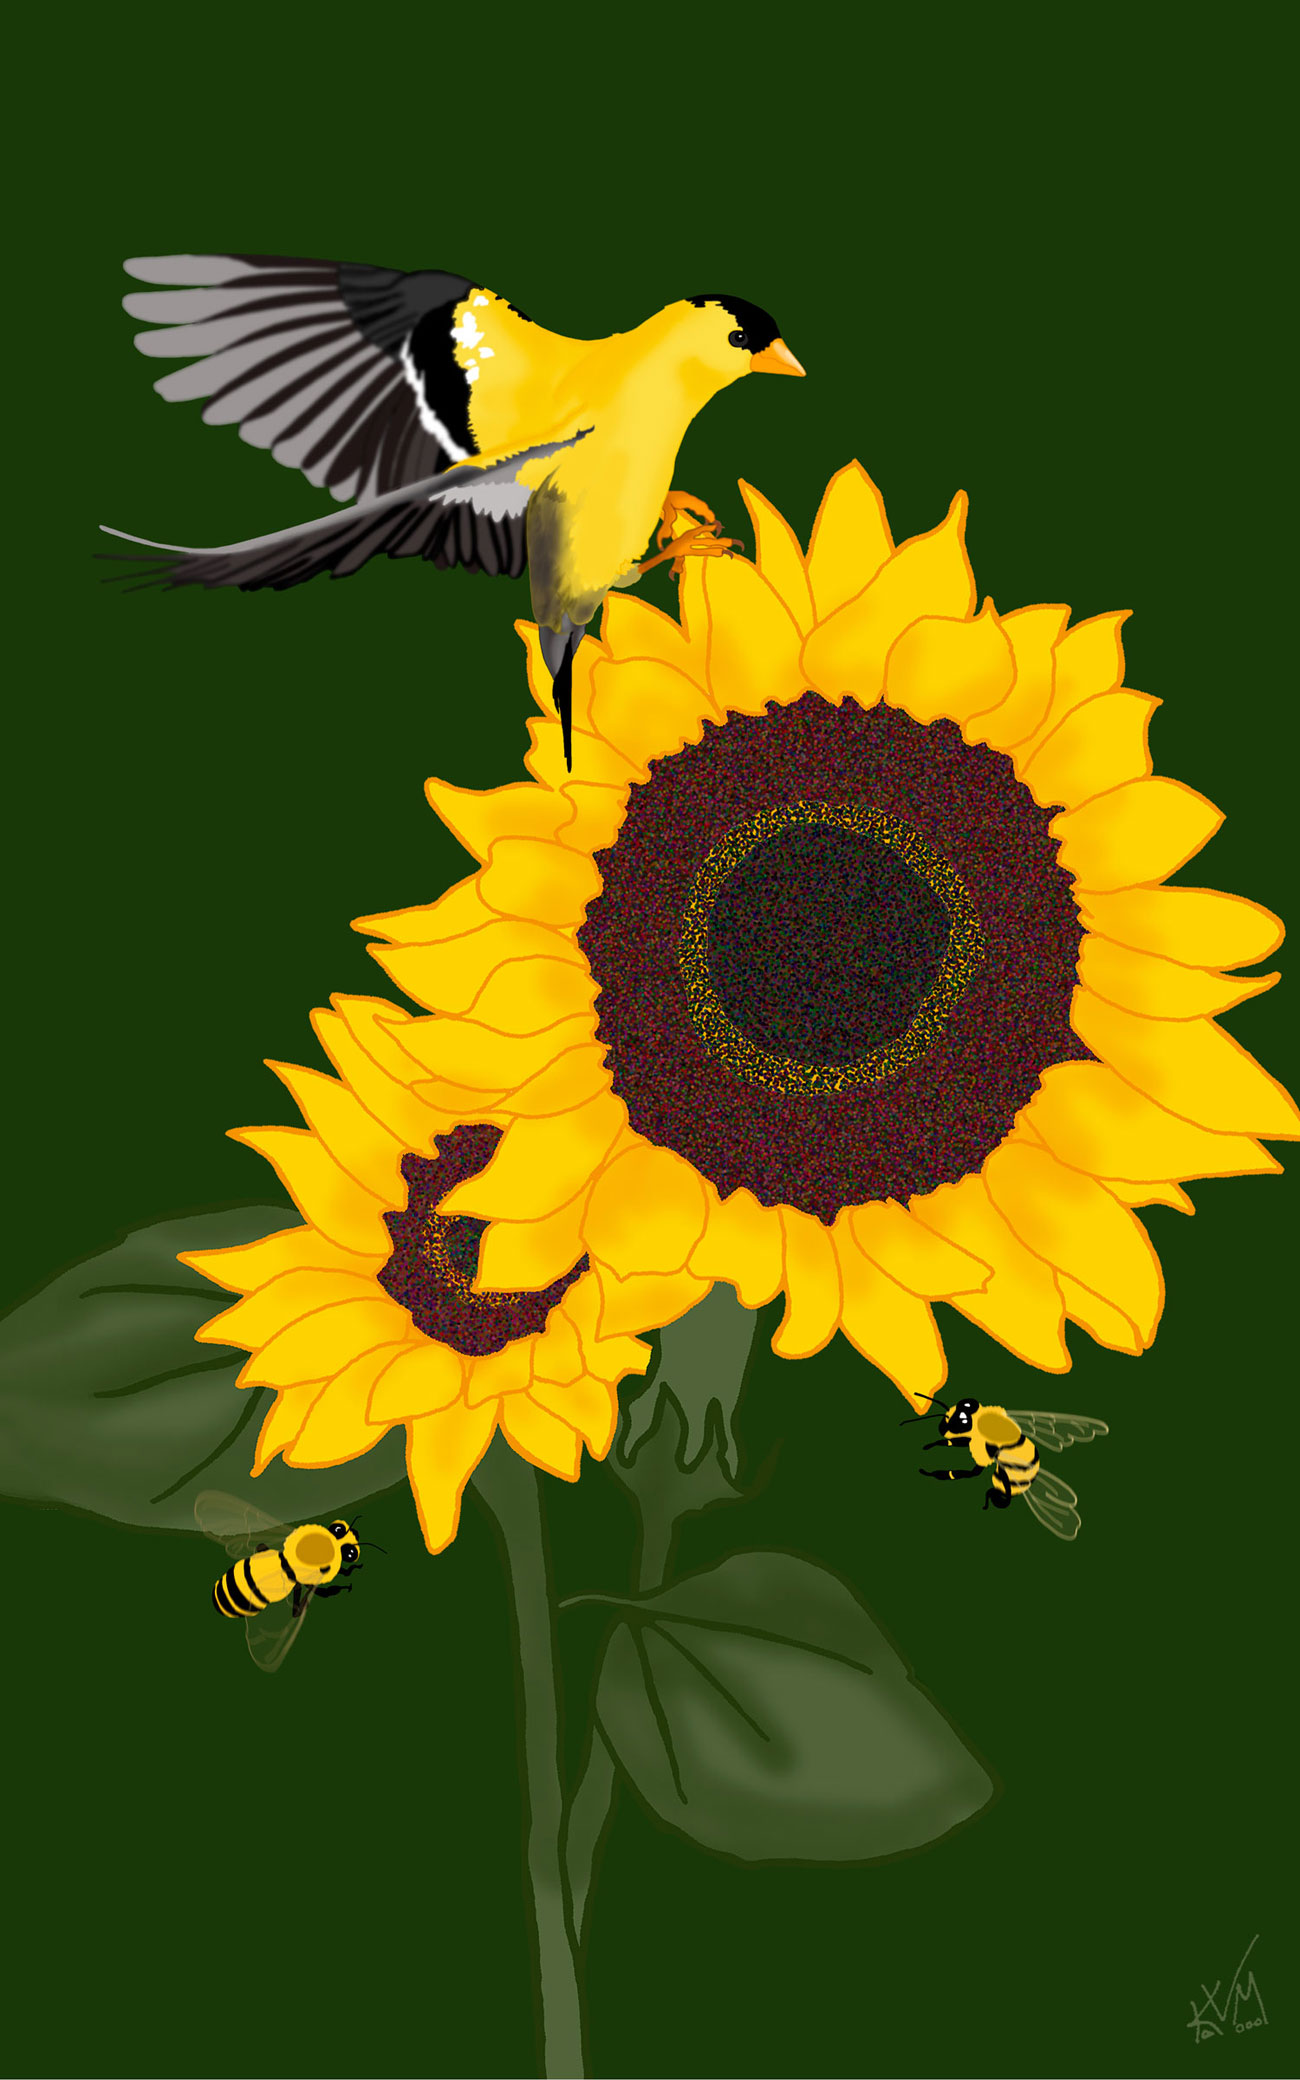 For Love of the Birds and the Bees (271)